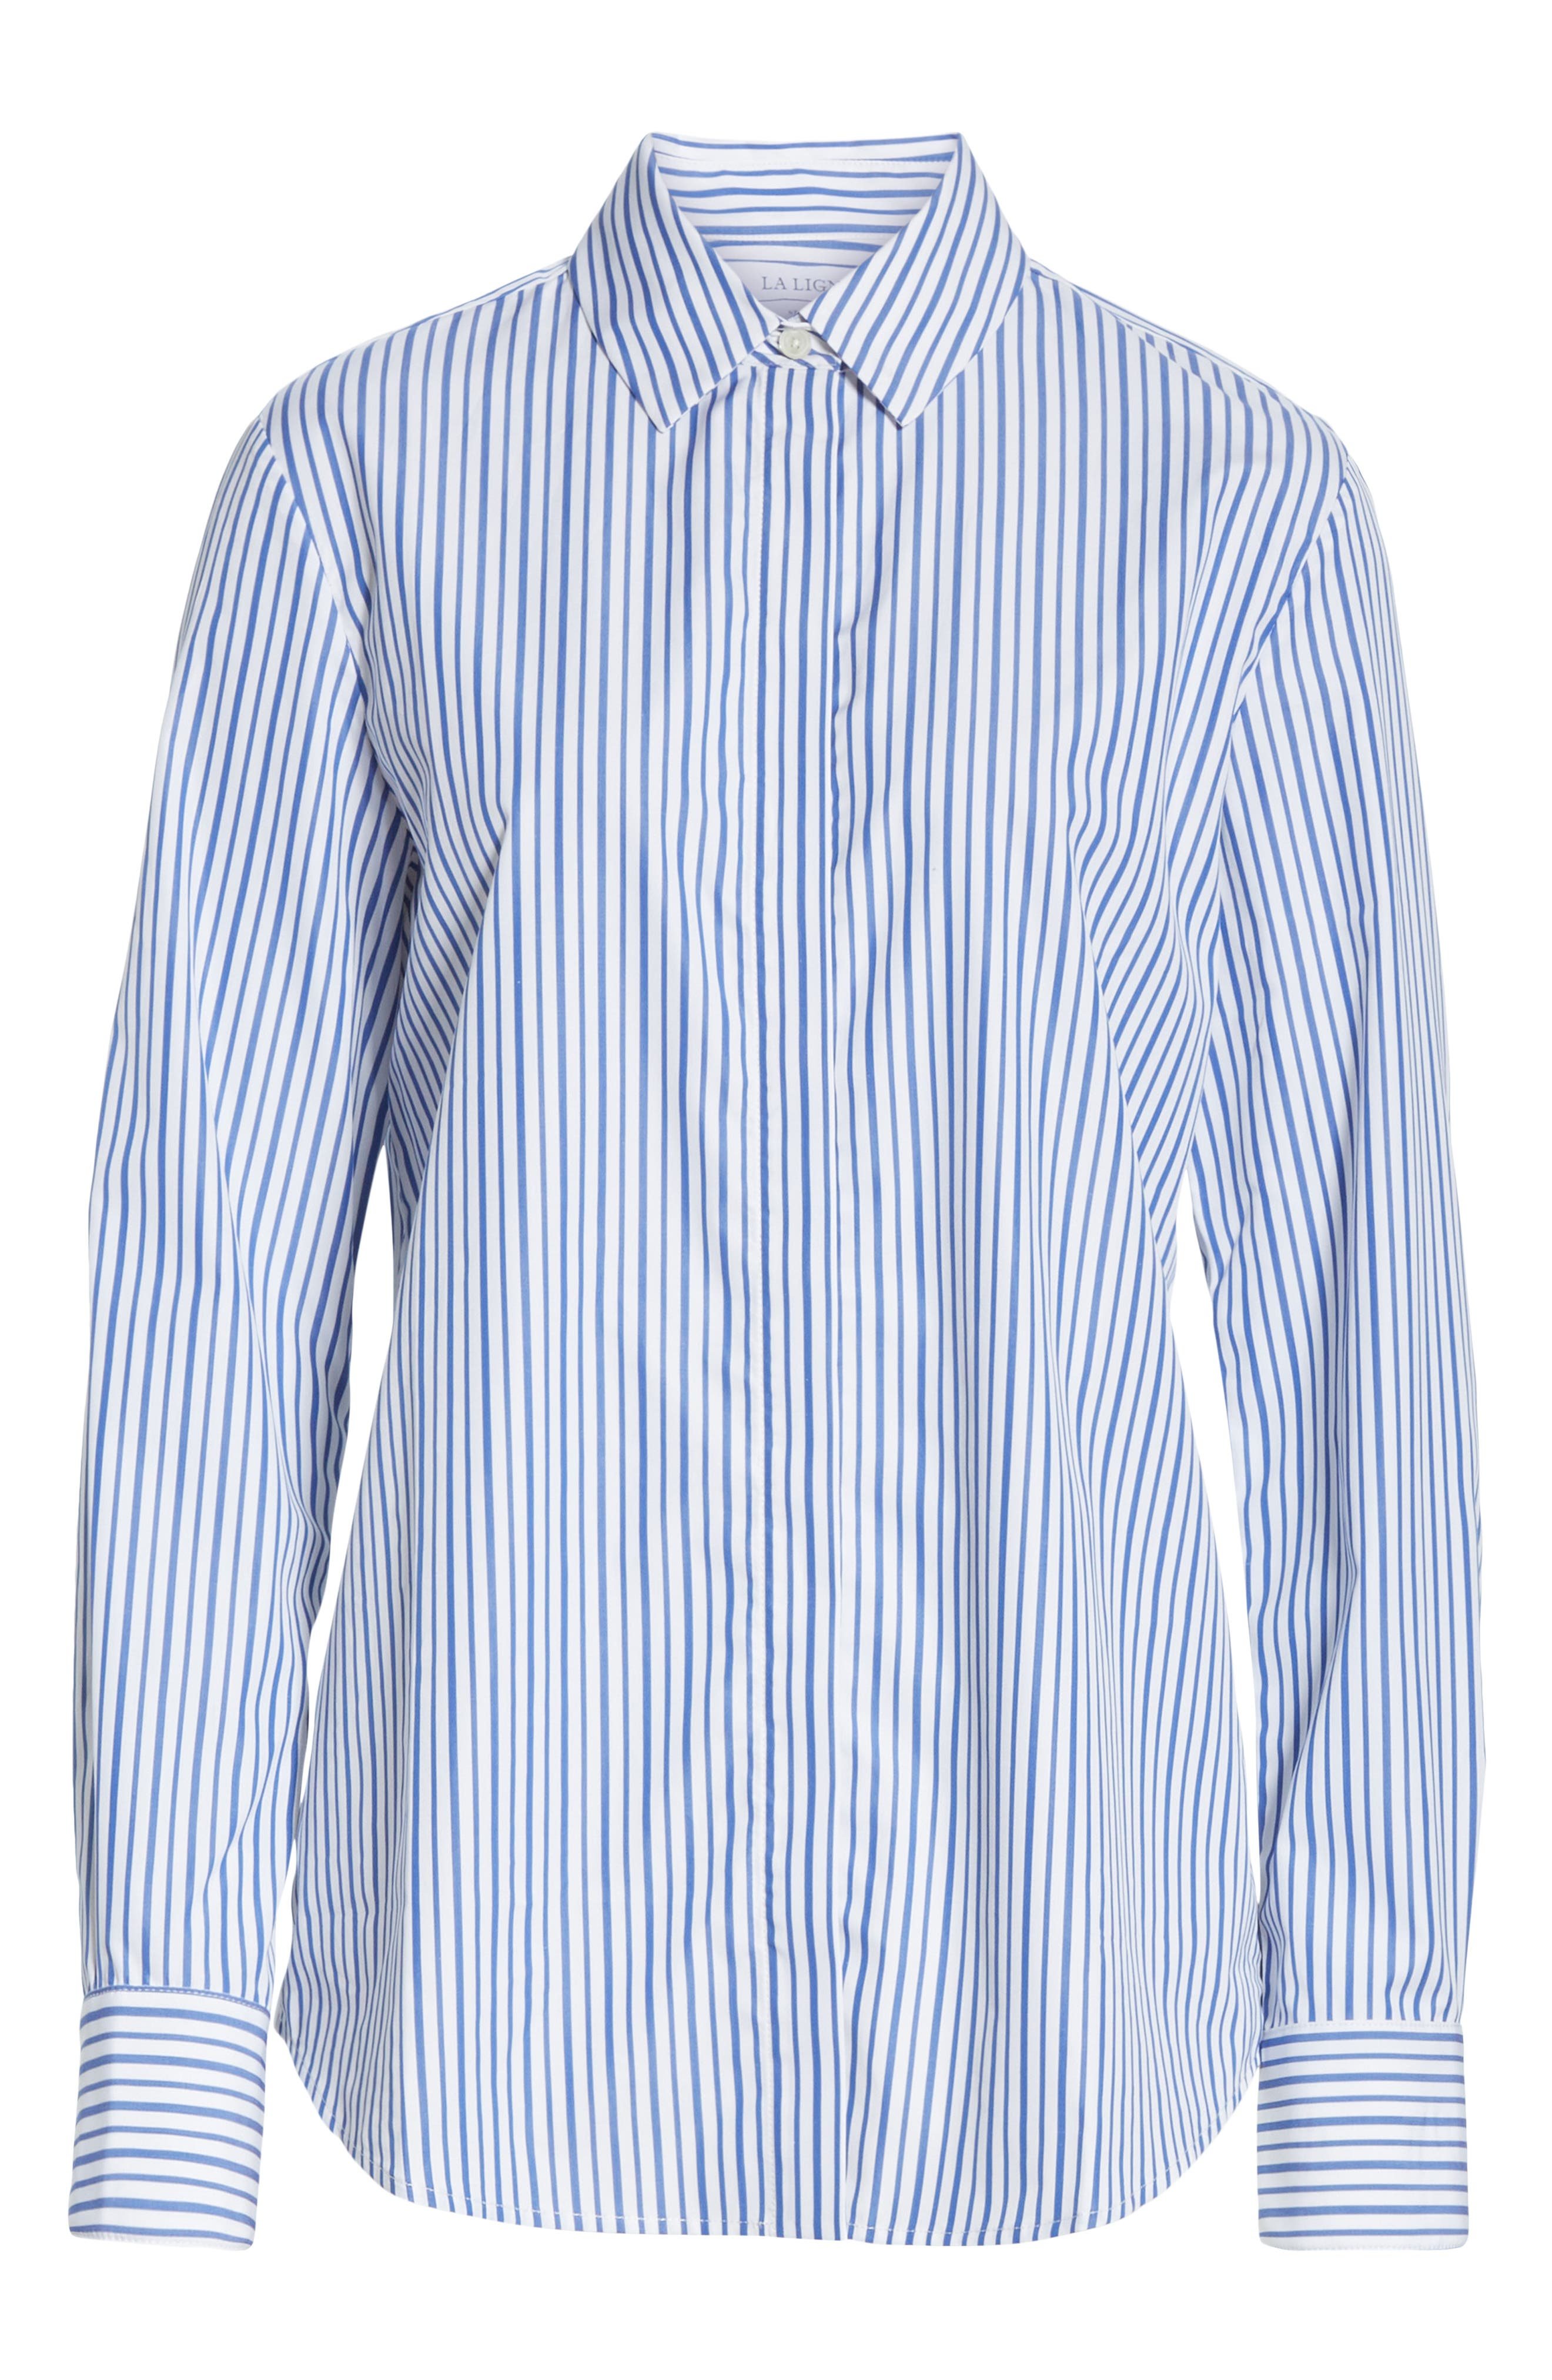 Bleu Man Shirt,                             Alternate thumbnail 6, color,                             BLUE AND WHITE STRIPES